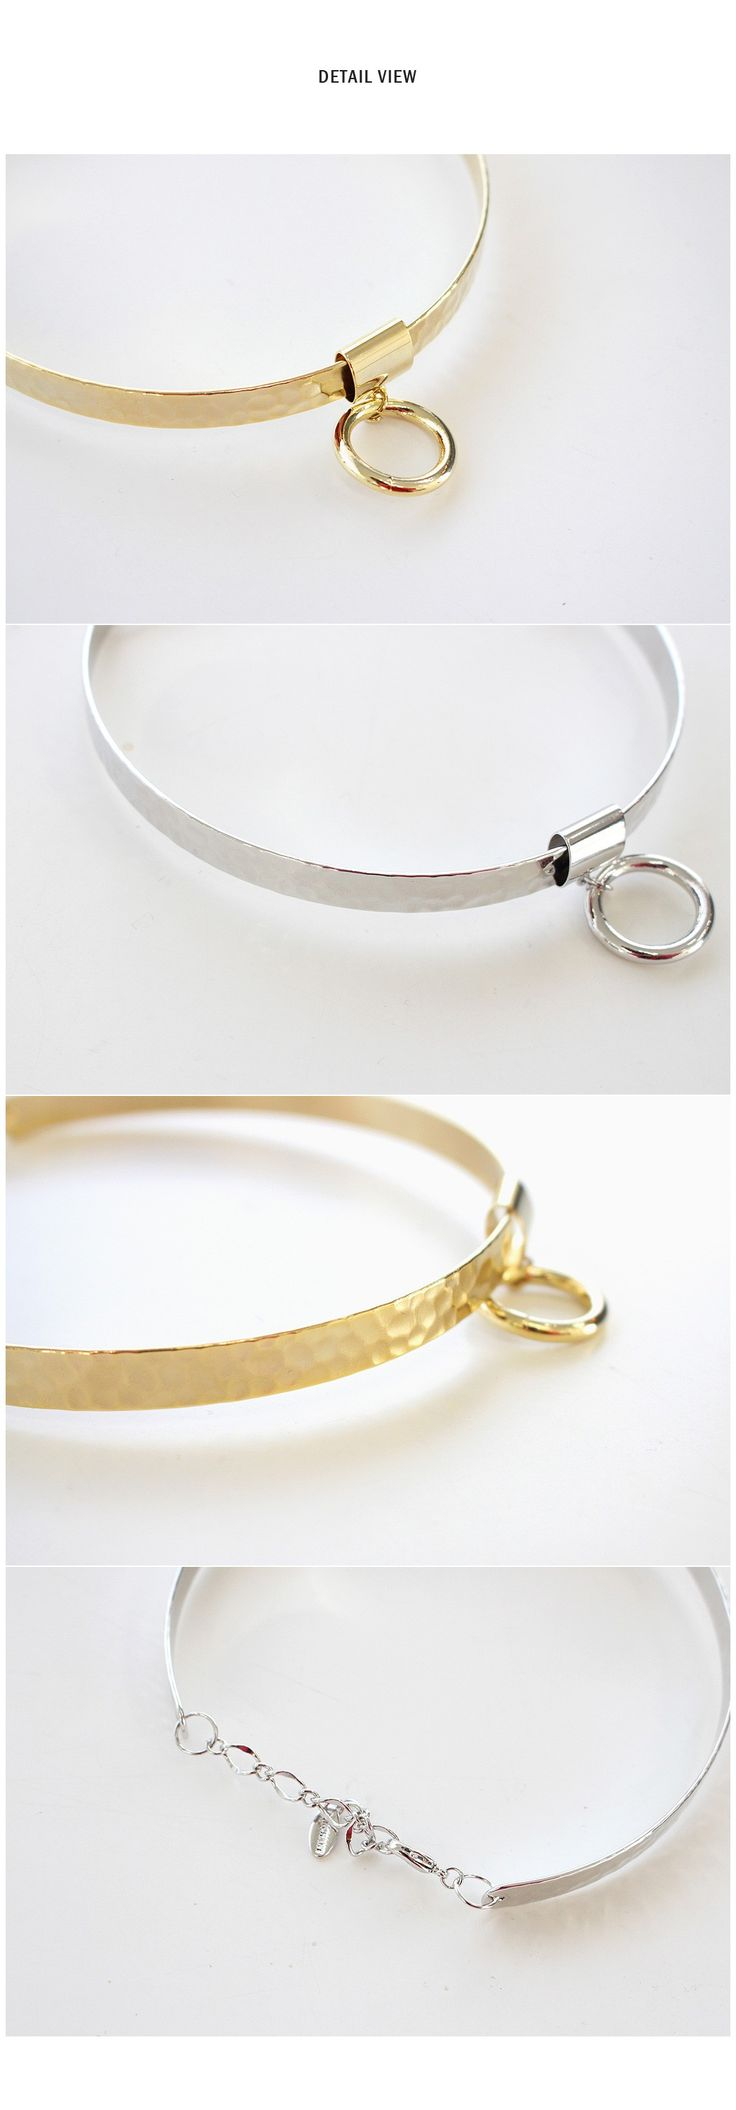 Circle-Pendant Metal Choker                                                                                                                                                                                 More